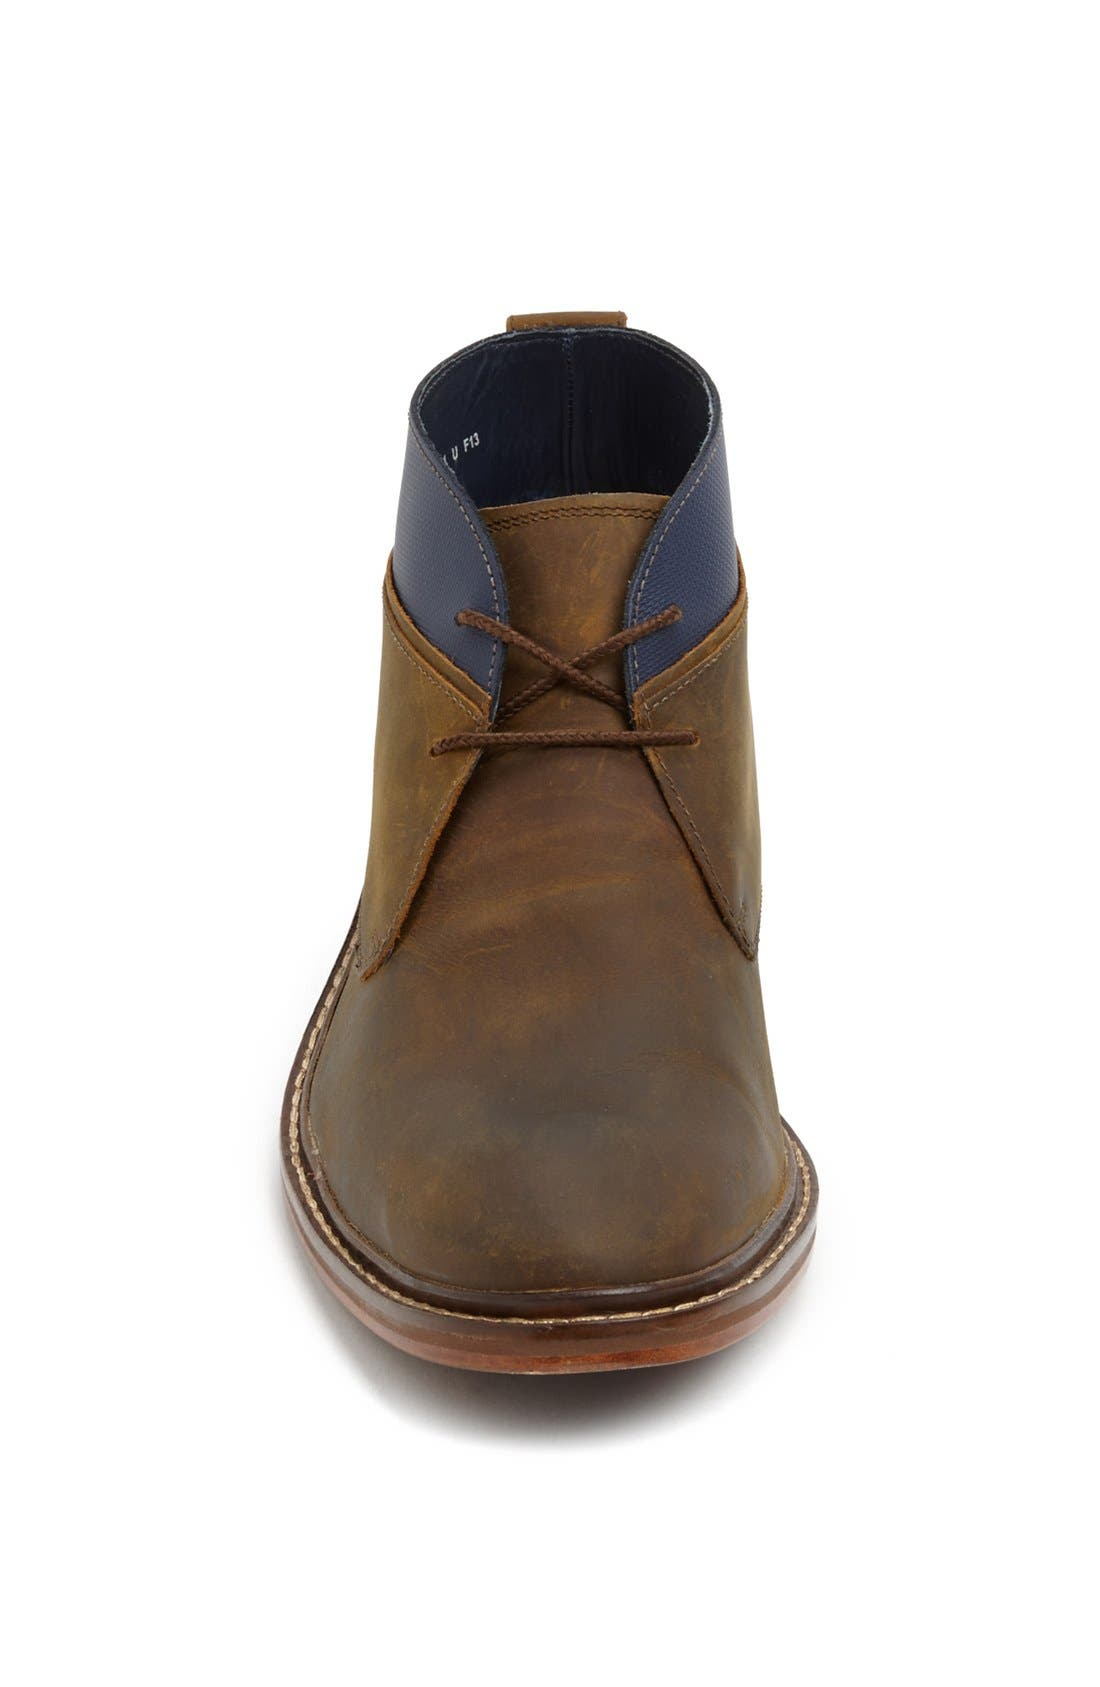 'Colton' Chukka Boot,                             Alternate thumbnail 3, color,                             COPPER/ PEACOAT LEATHER